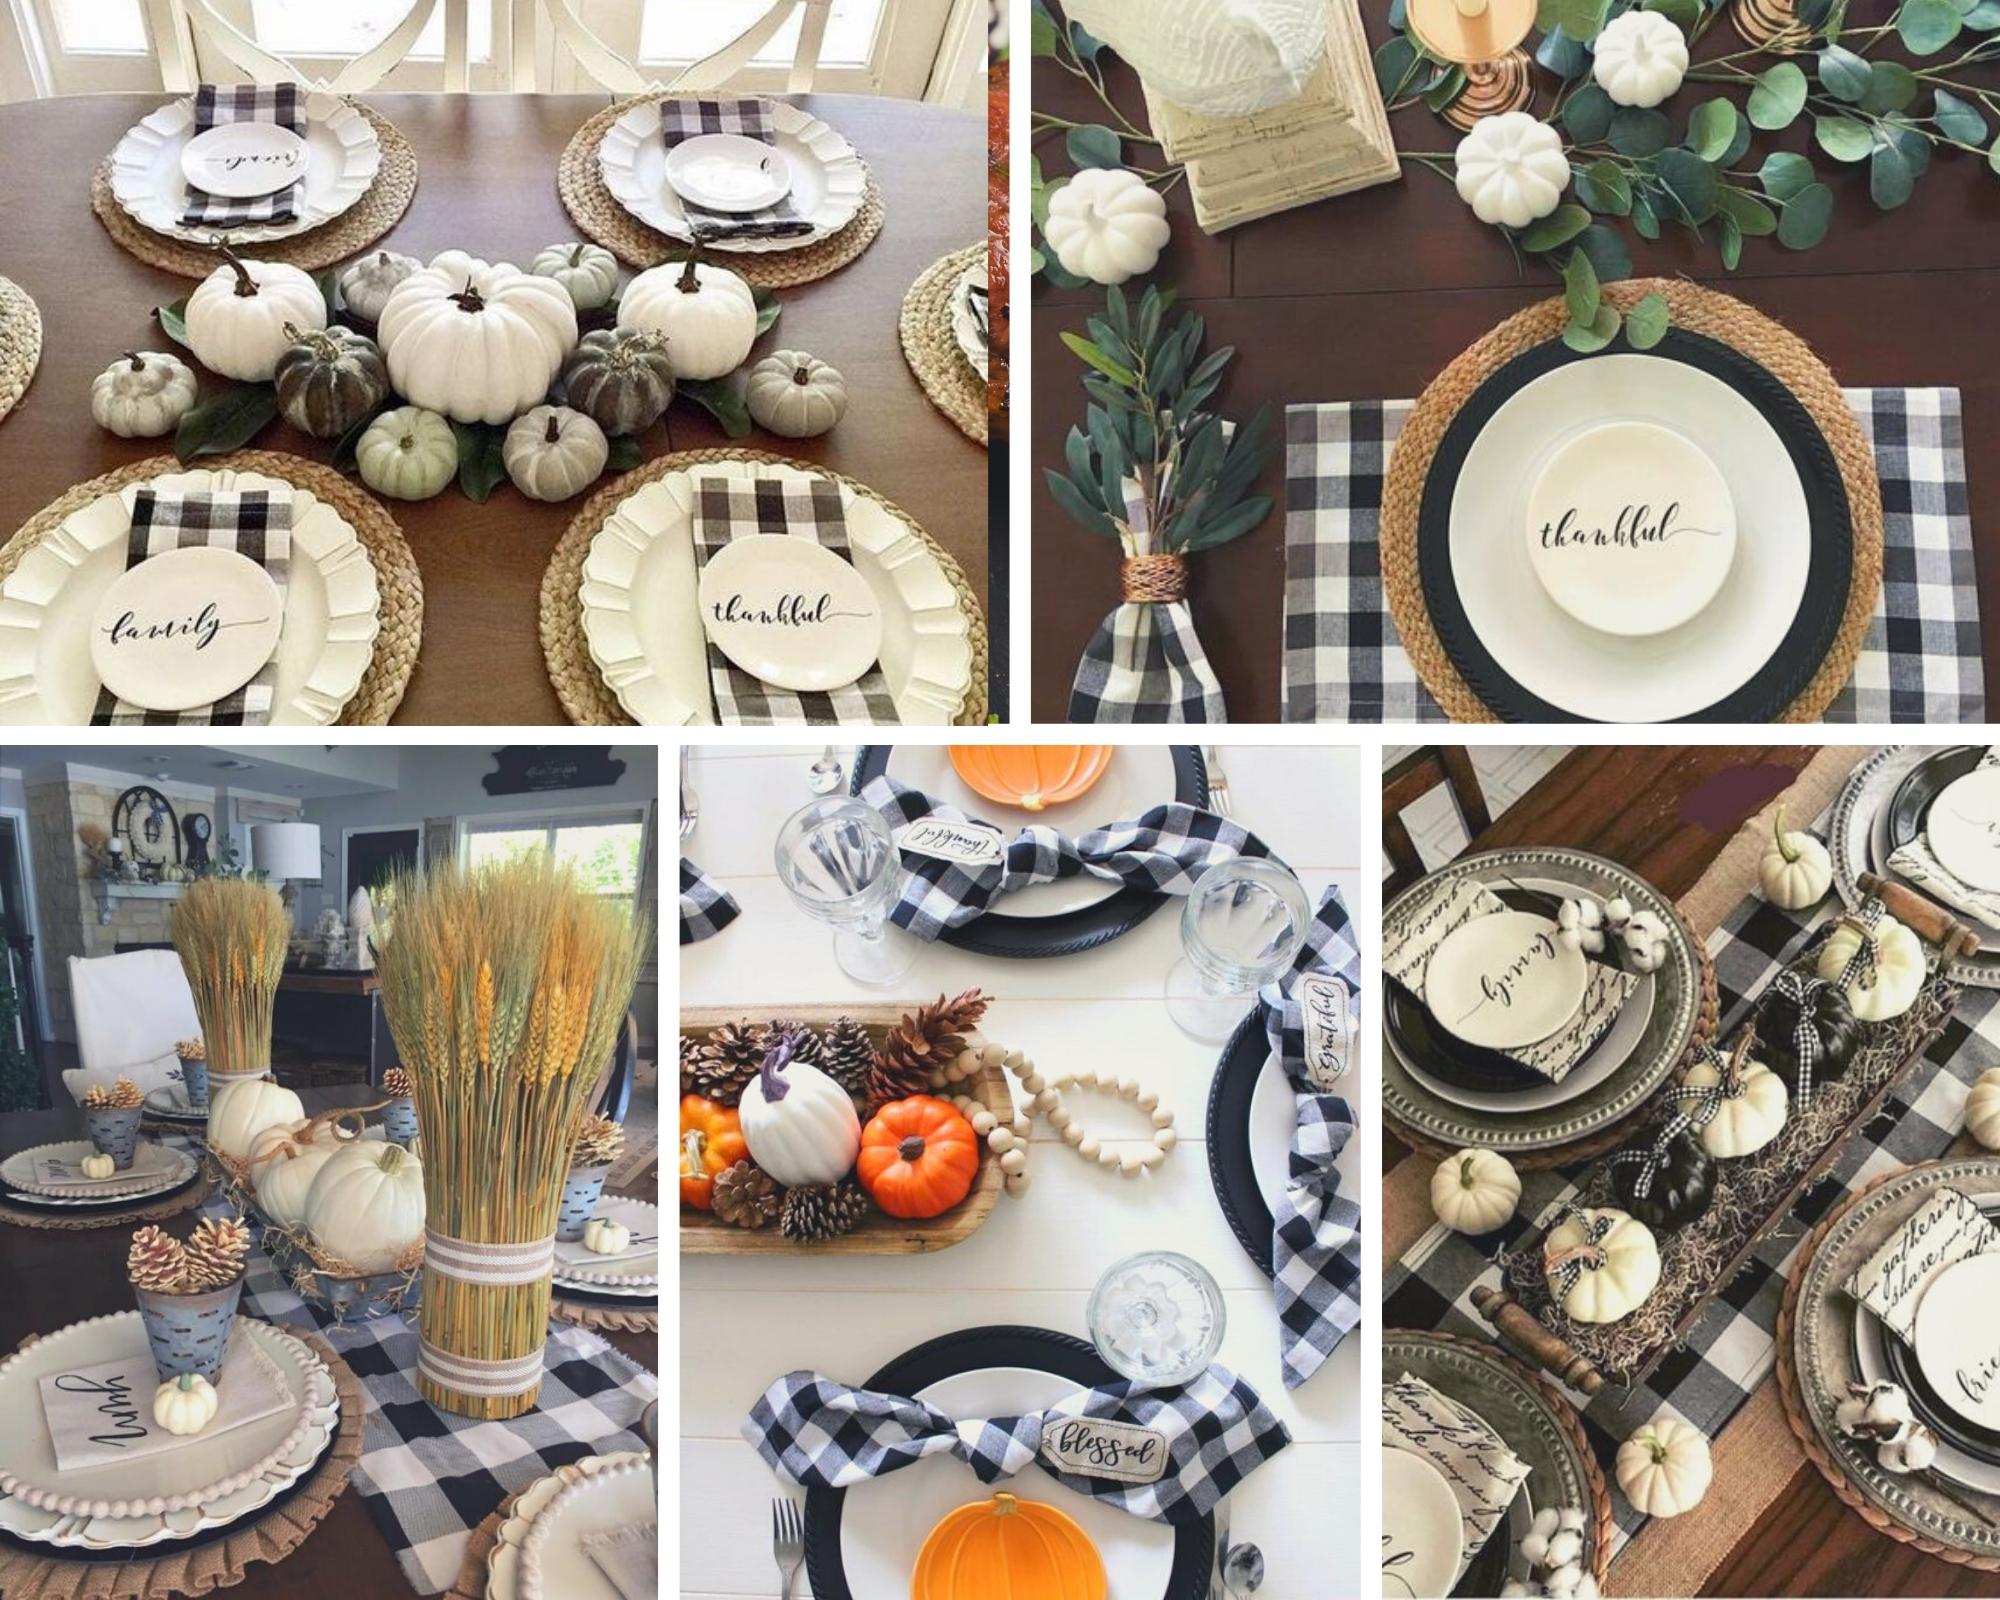 Thanksgiving Decorations: 'Tis the Season to Bring Out That Little Extra Rachel Hulsund Contributor Miami Mom Collective